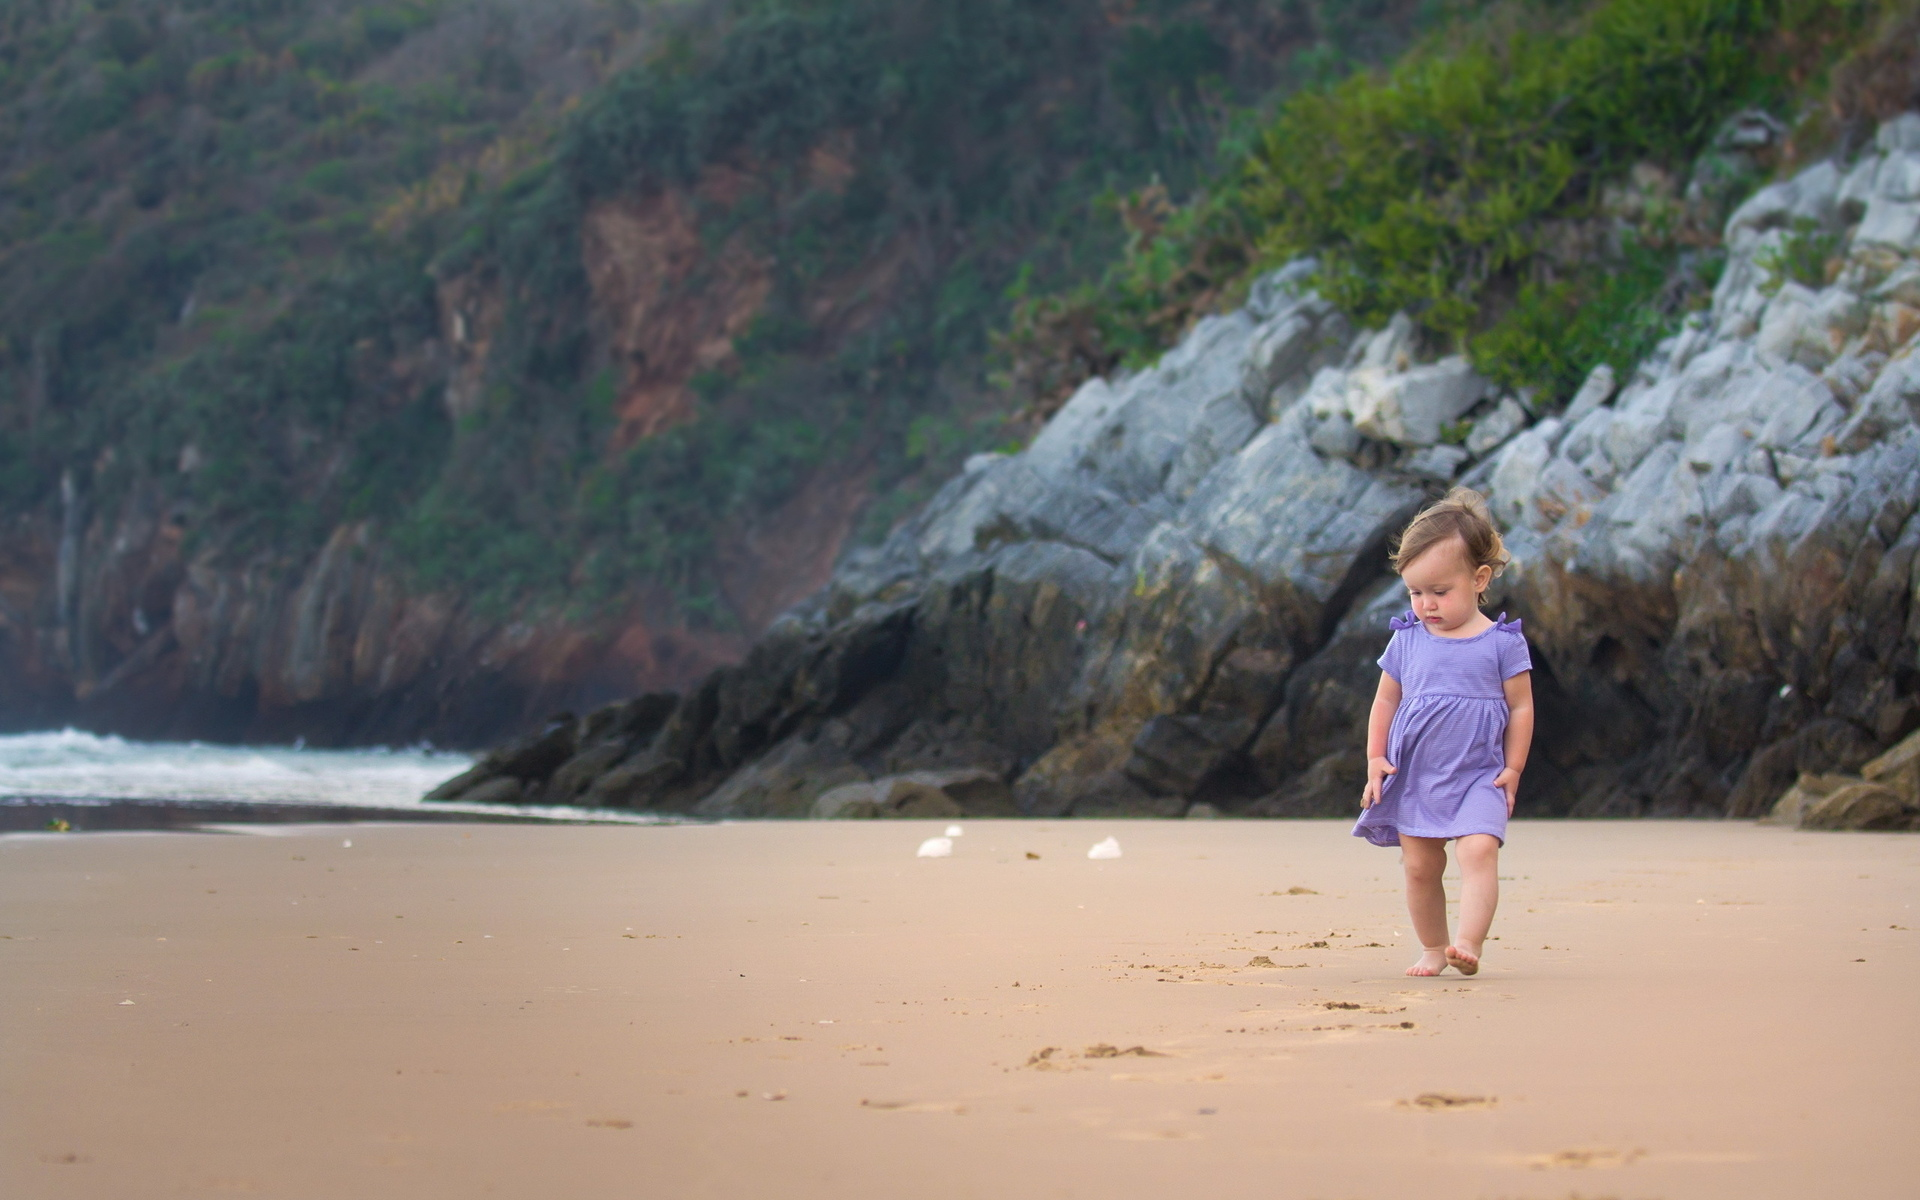 people babies children kids cute nature beaches landscapes mountains